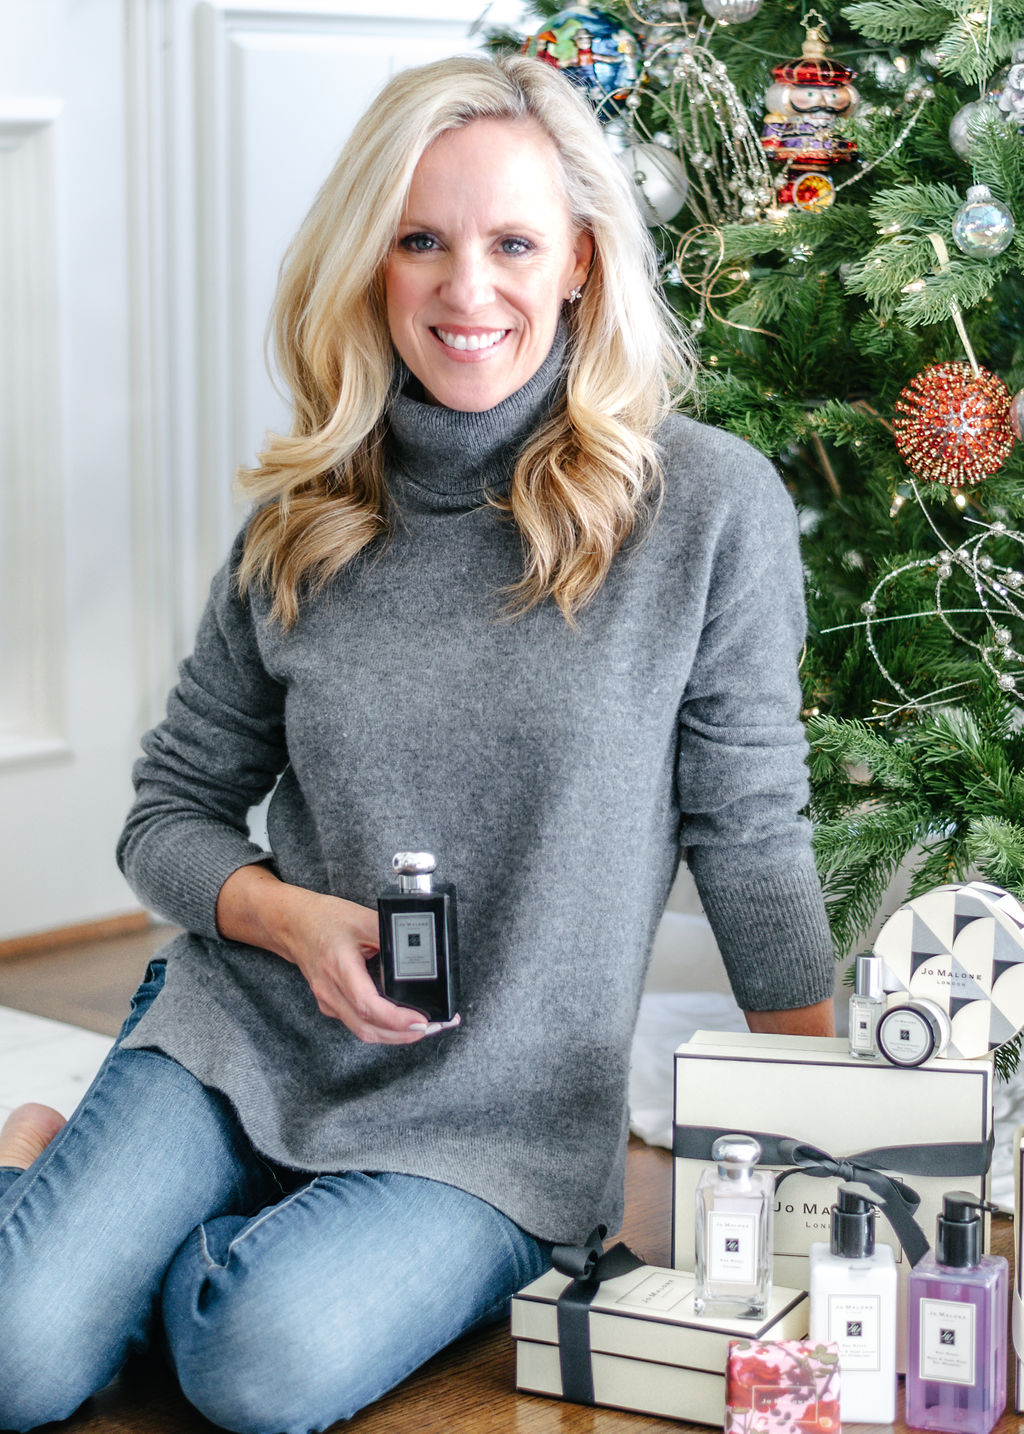 Favorite Gifts for Her from Nordstrom